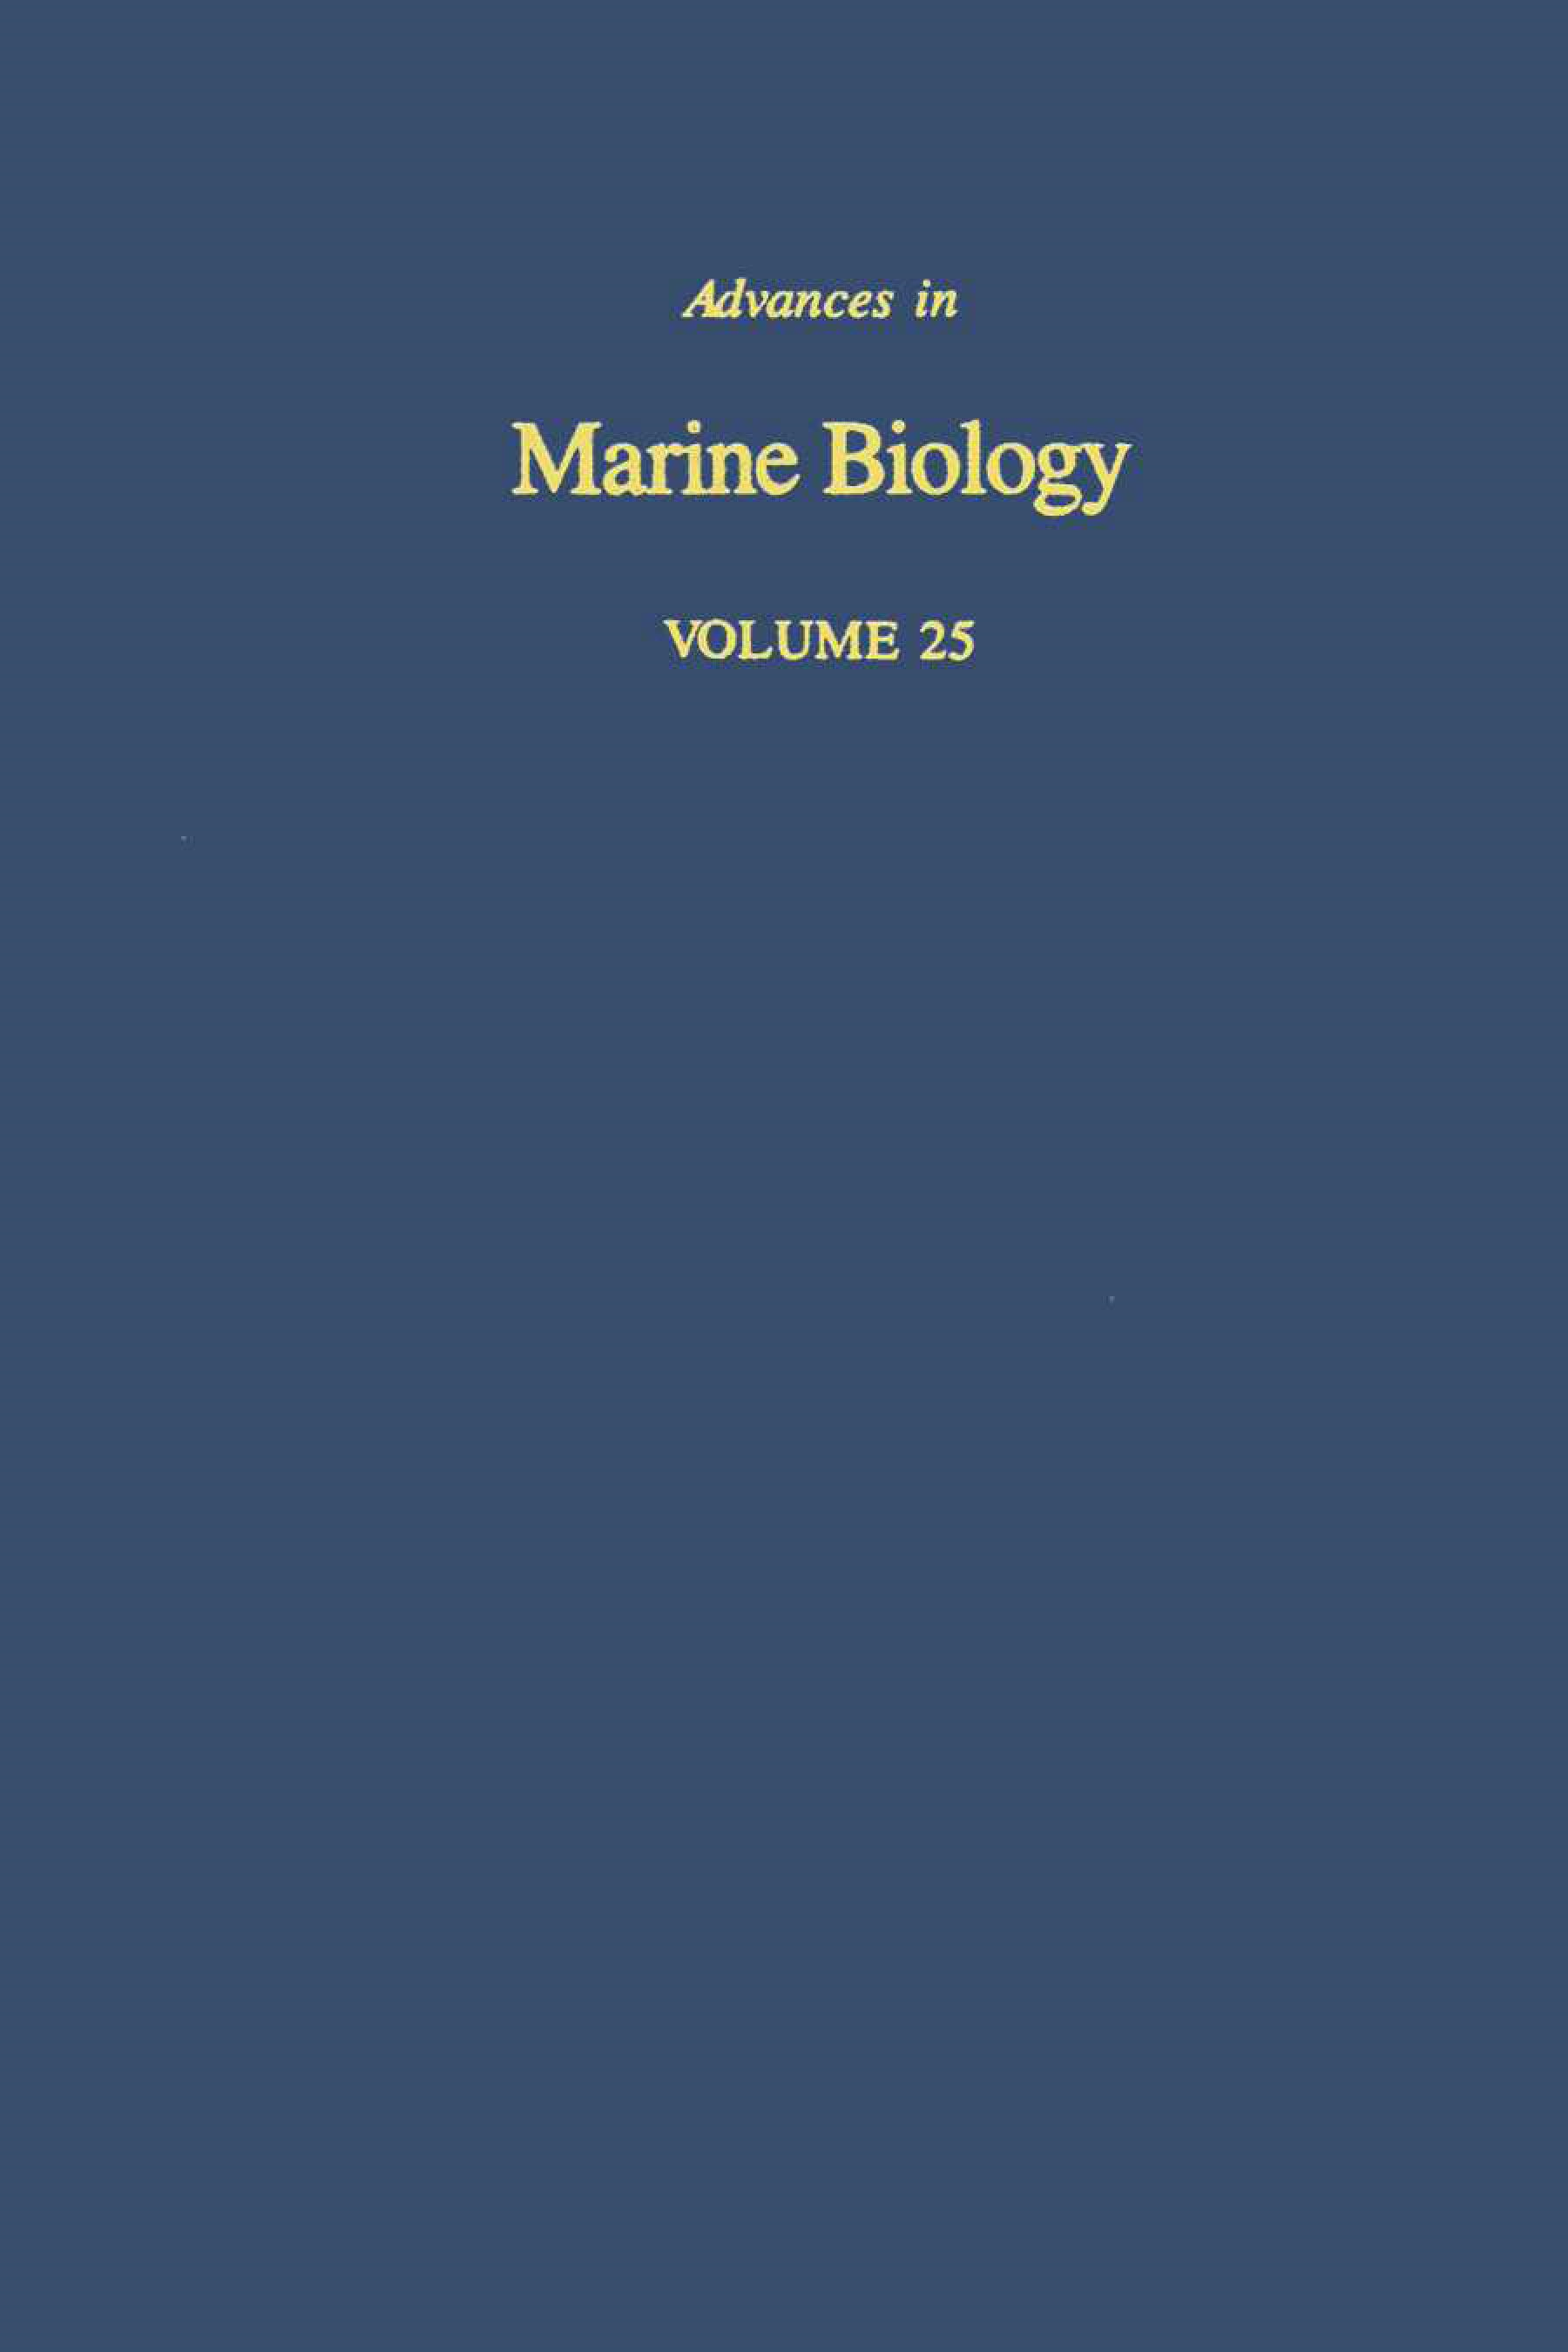 Advances in Marine Biology: Volume 25